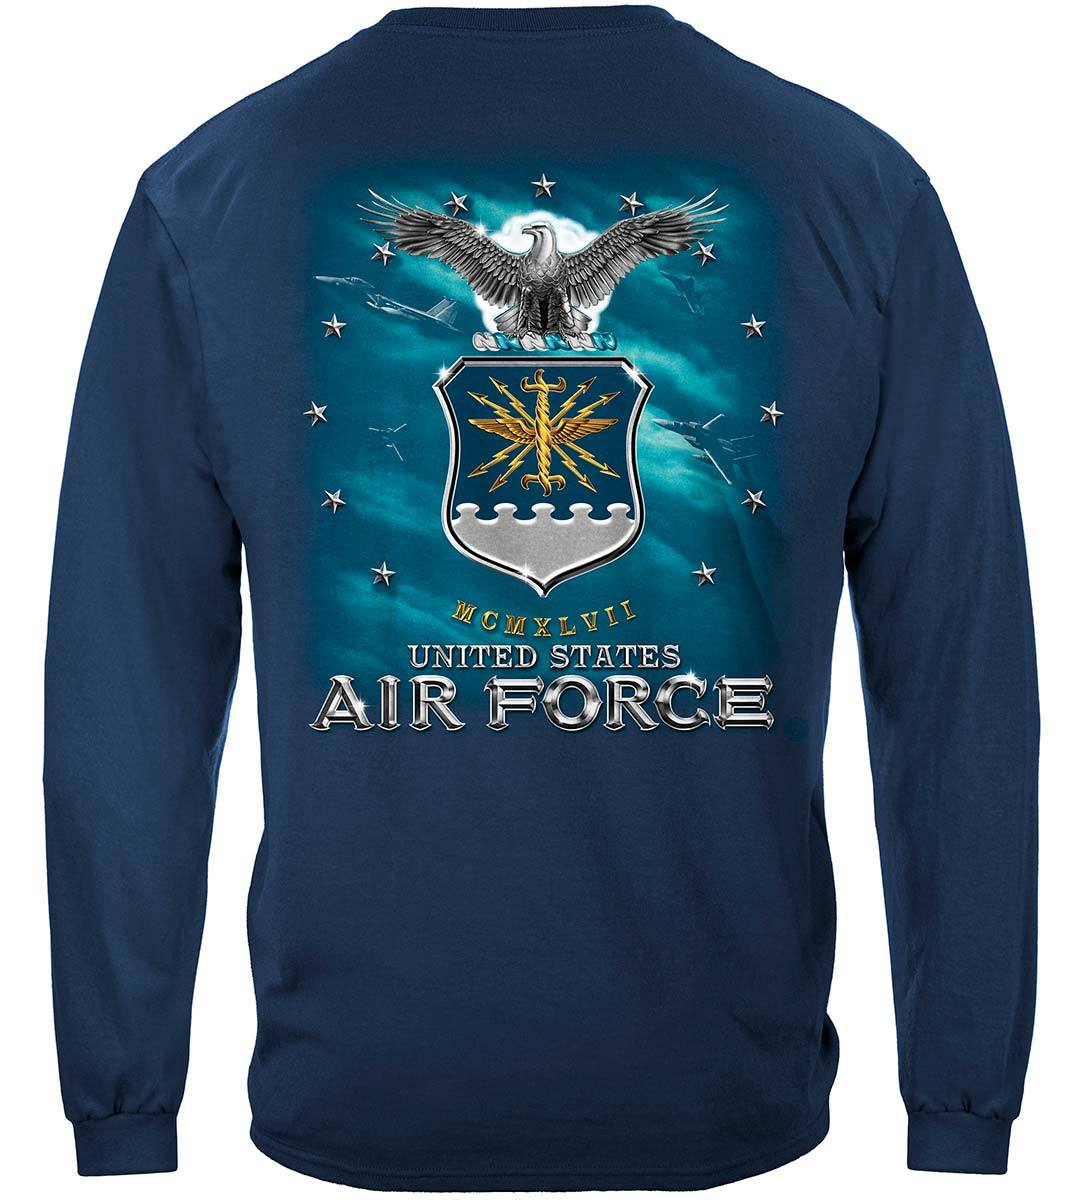 Air Force USAF Missile Premium Long Sleeves